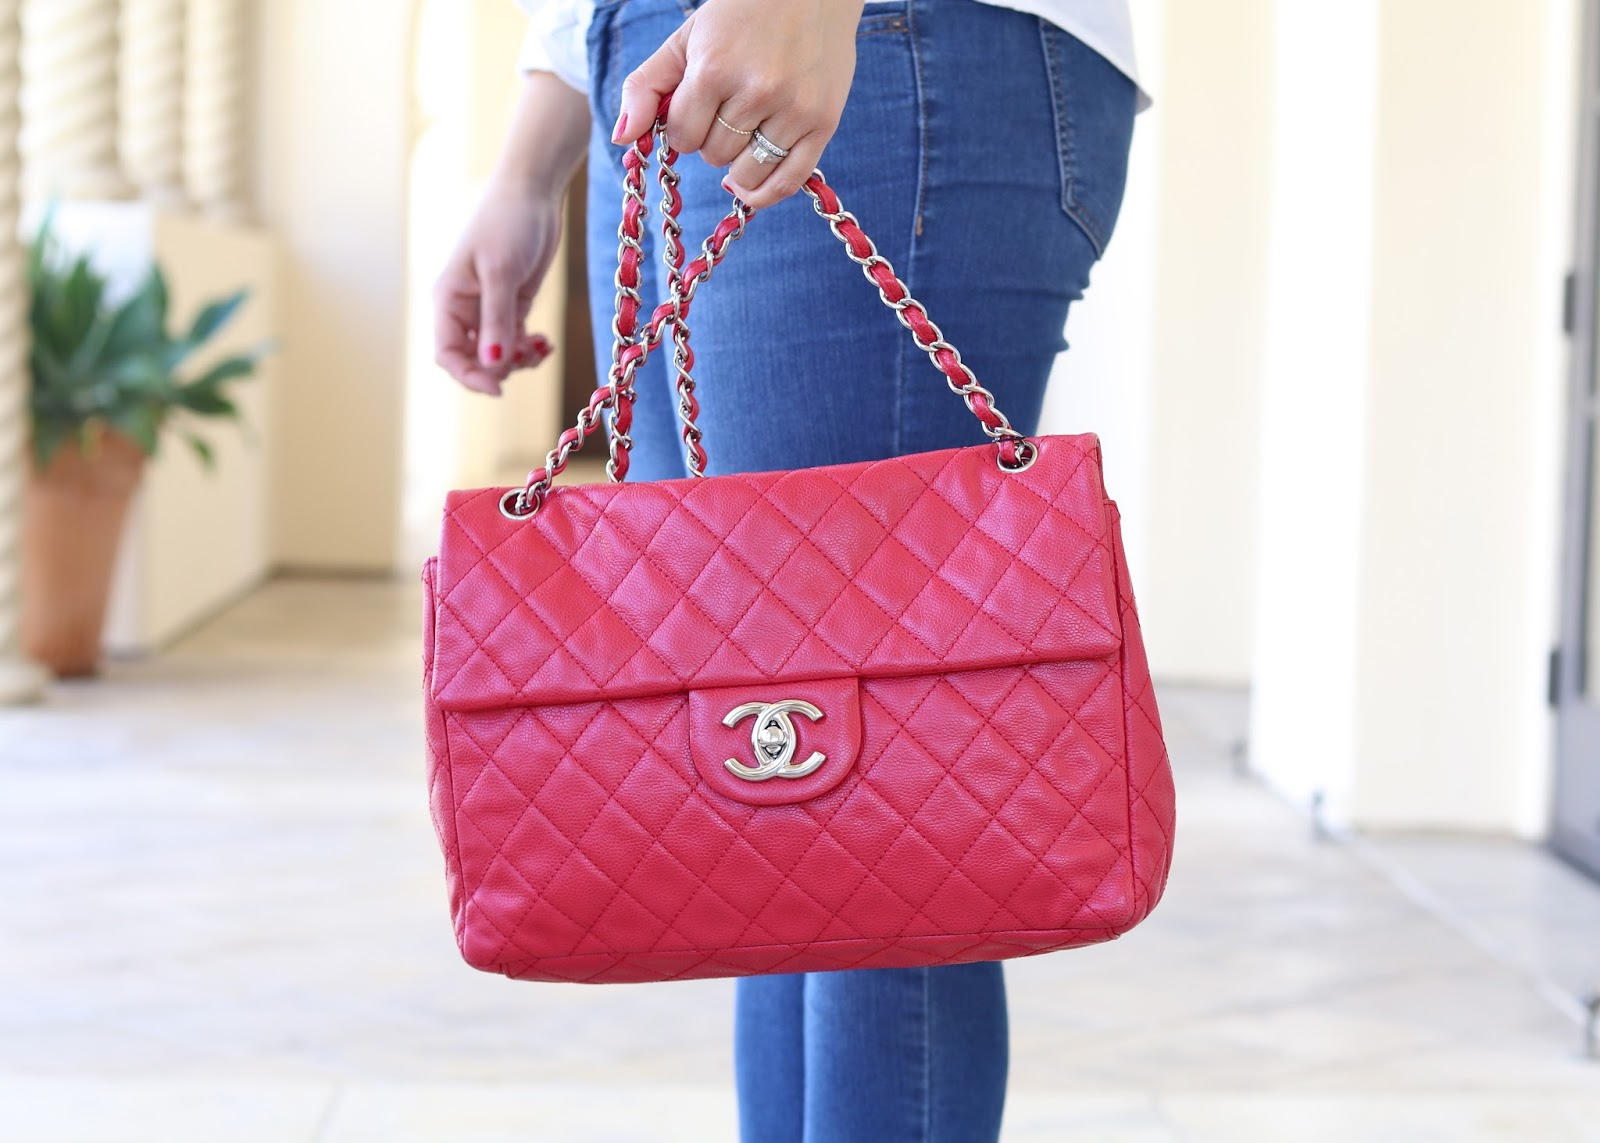 CHANEL RED SOFT CAVIAR LEATHER MAXI FLAP BAG, chanel red with silver hardware